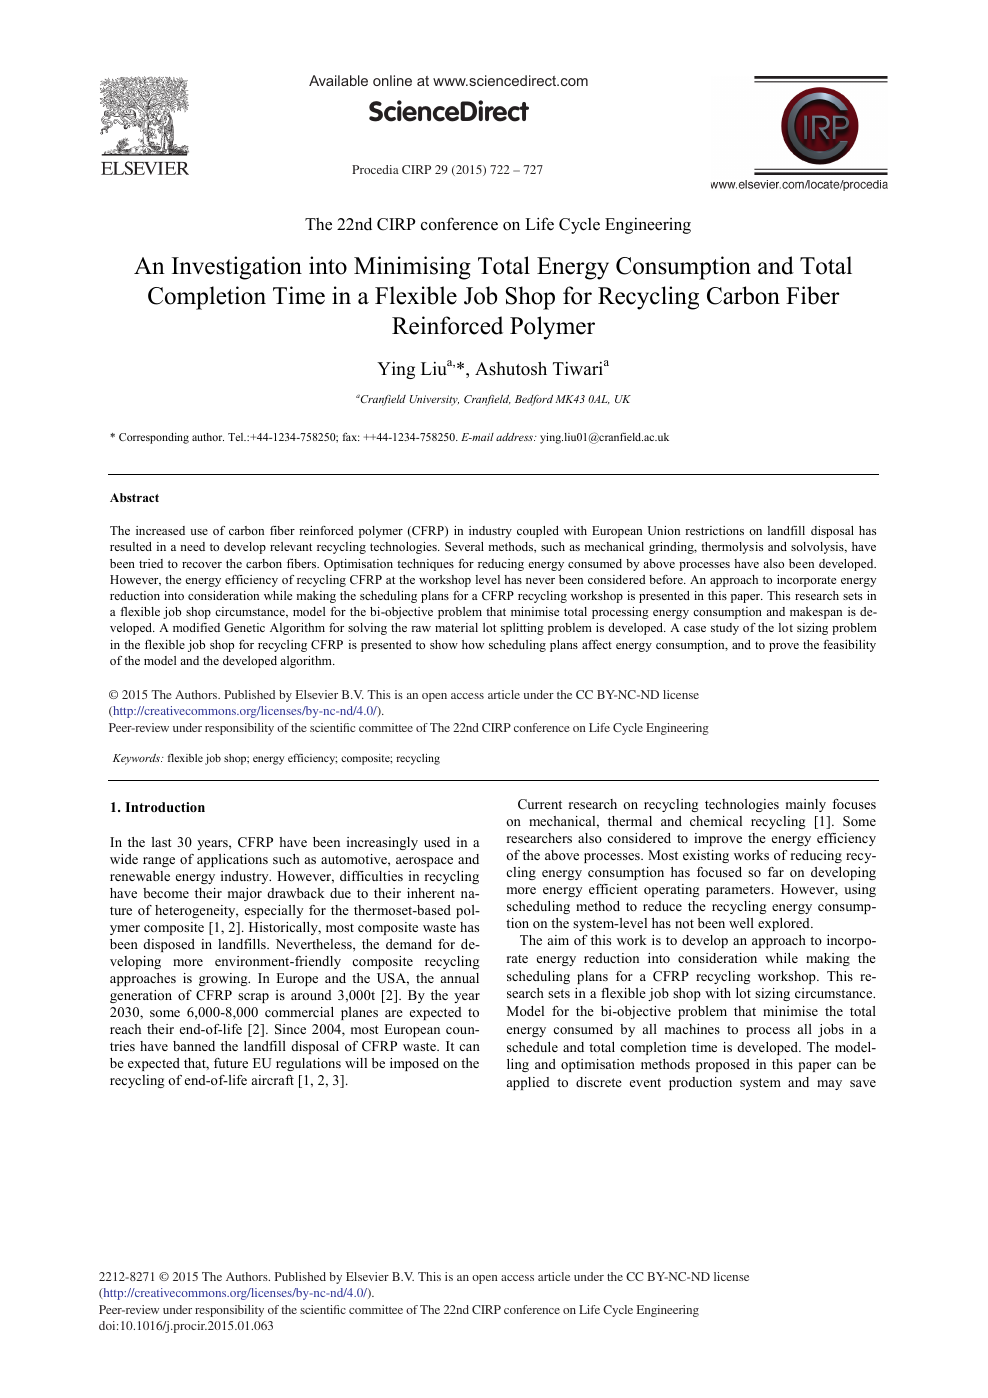 An Investigation into Minimising Total Energy Consumption and Total